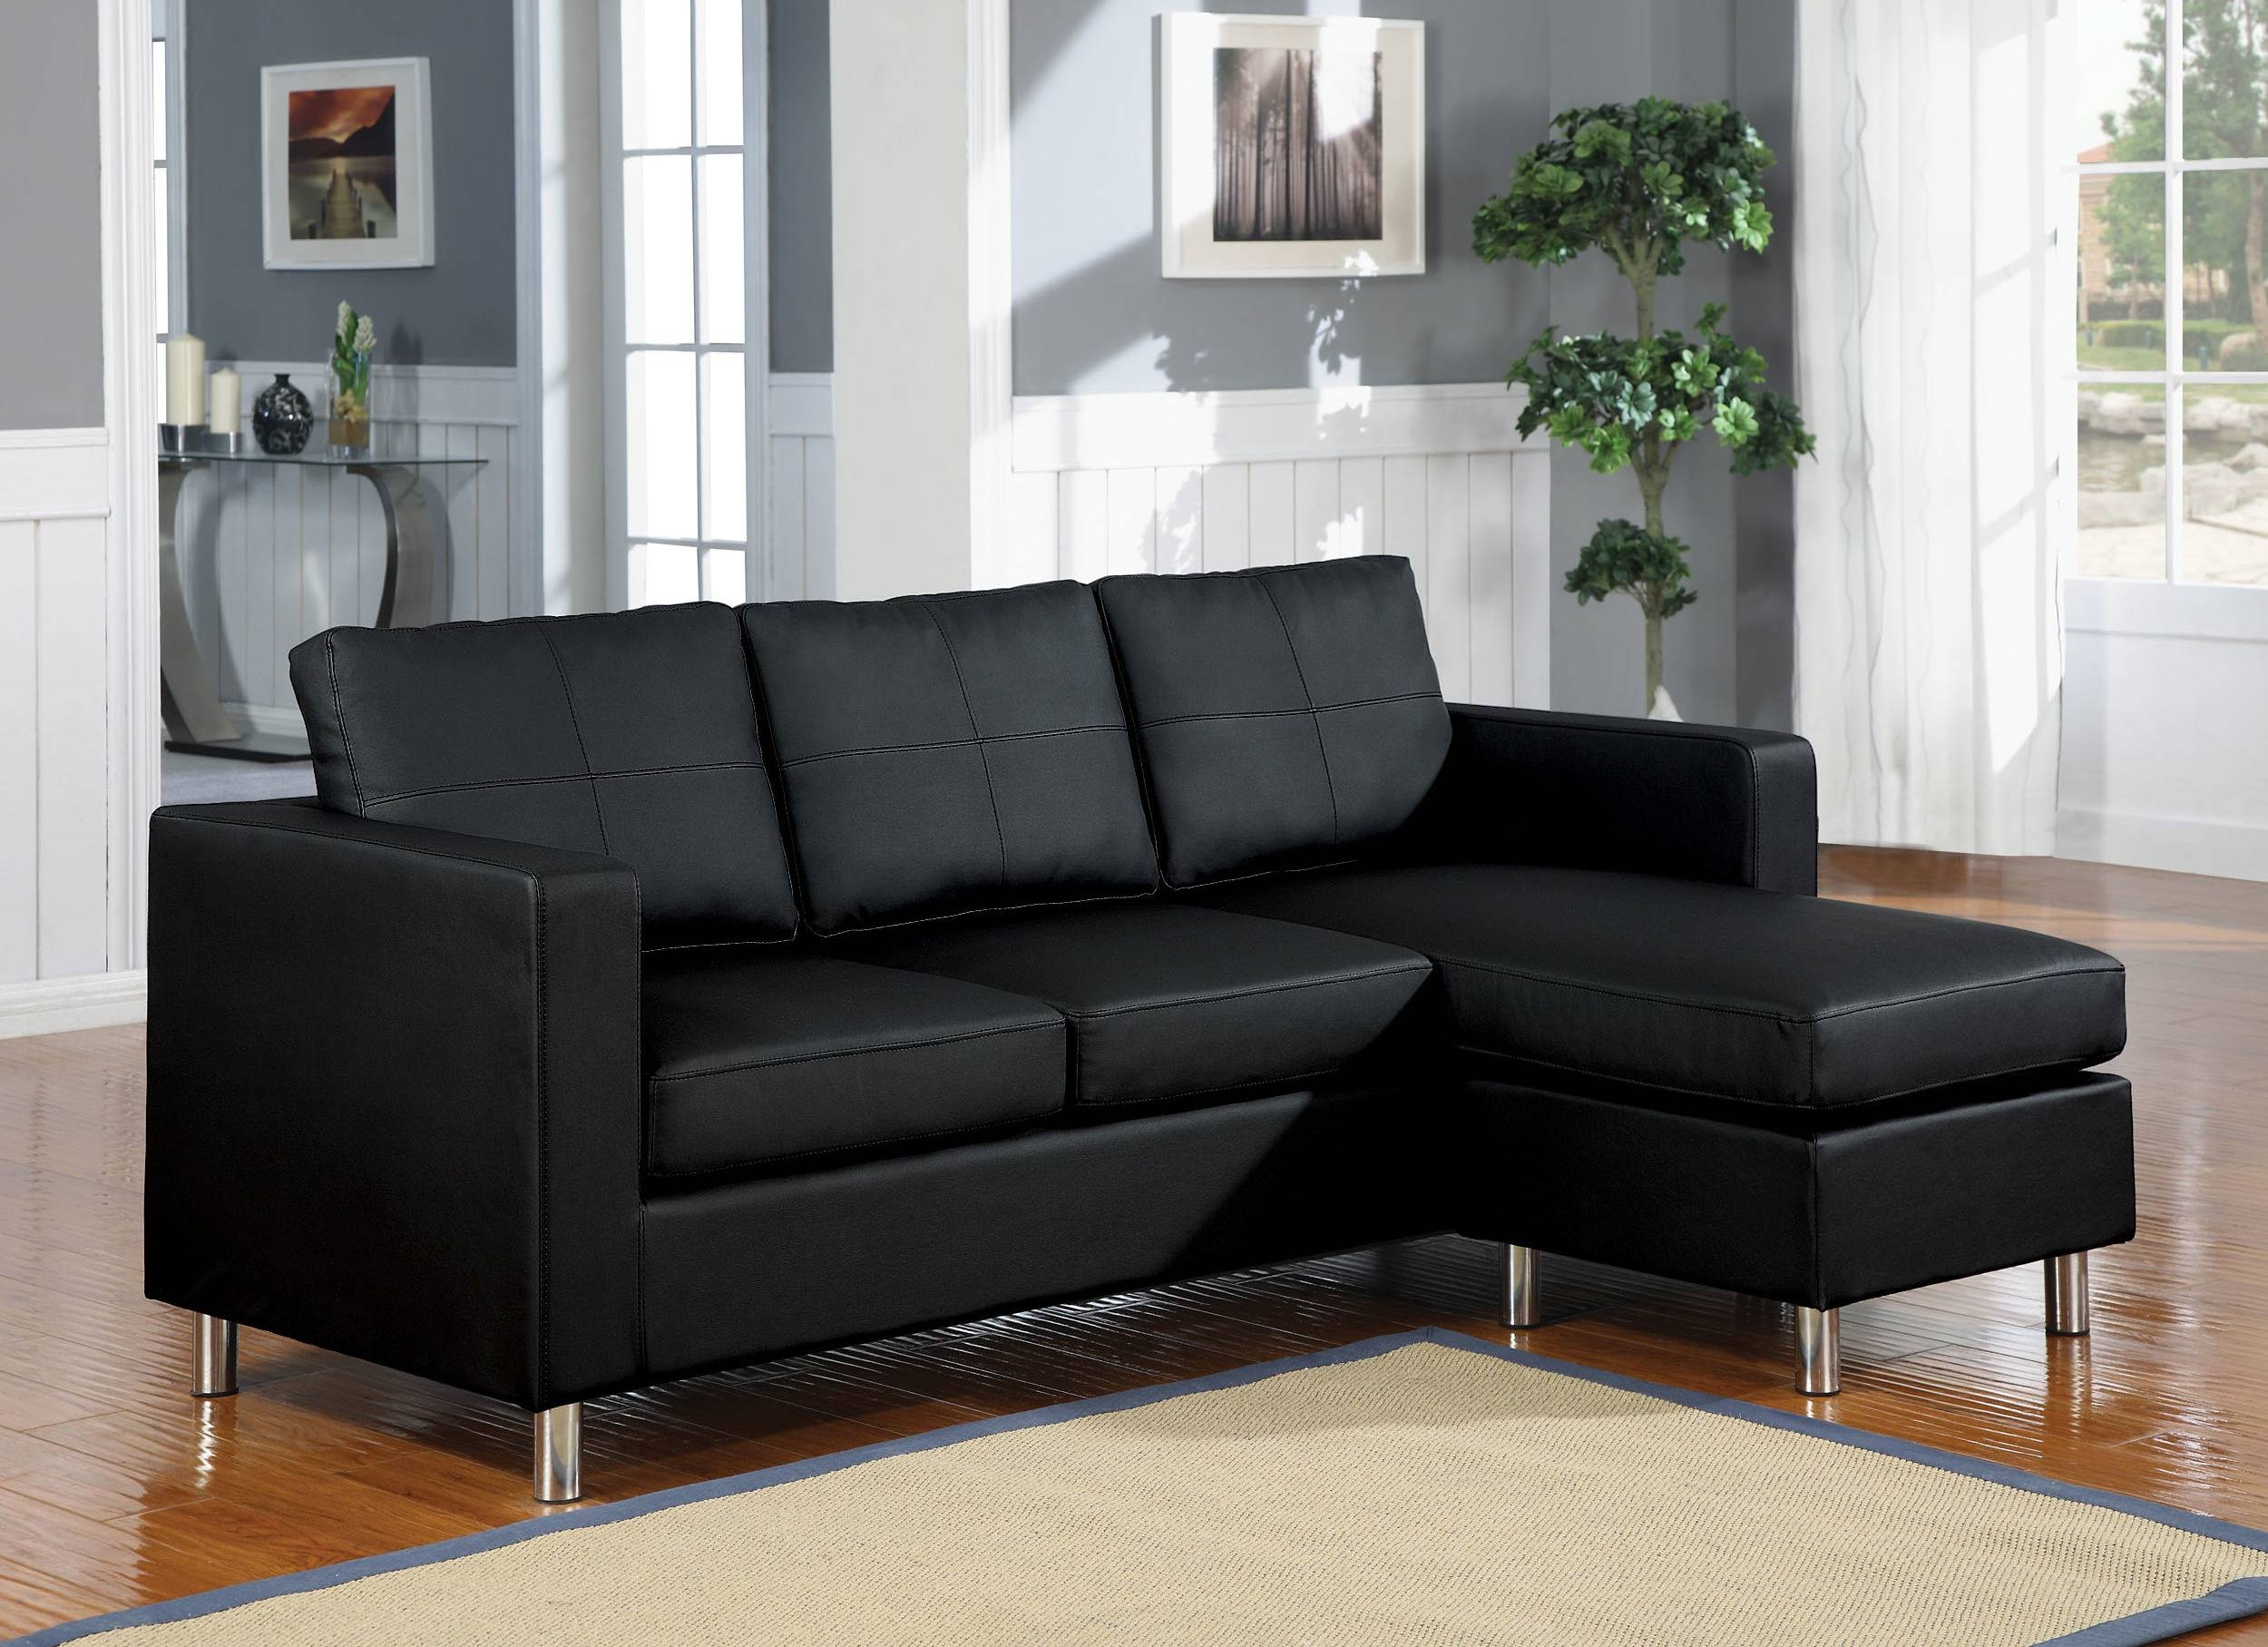 Www.bunscoilaniuir/s/2016/12/modern-Bonded-Lea within Compact Sectional Sofas (Image 13 of 30)